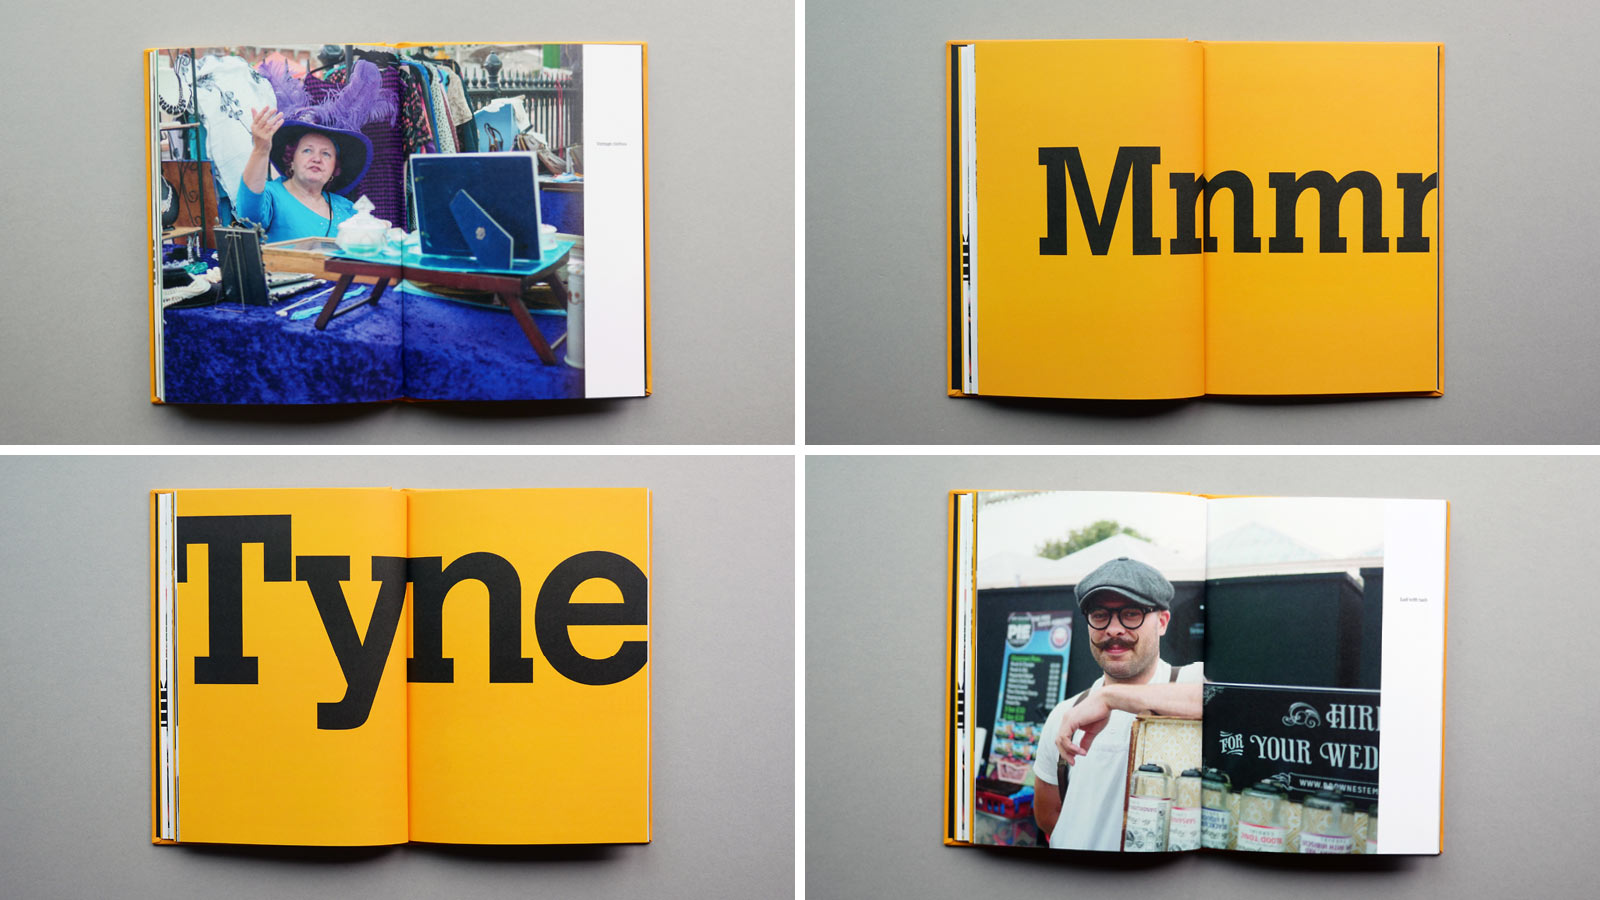 photography-design-picture-book-hard-case-bound-typography-spreads-4xc-milton-keynes-london